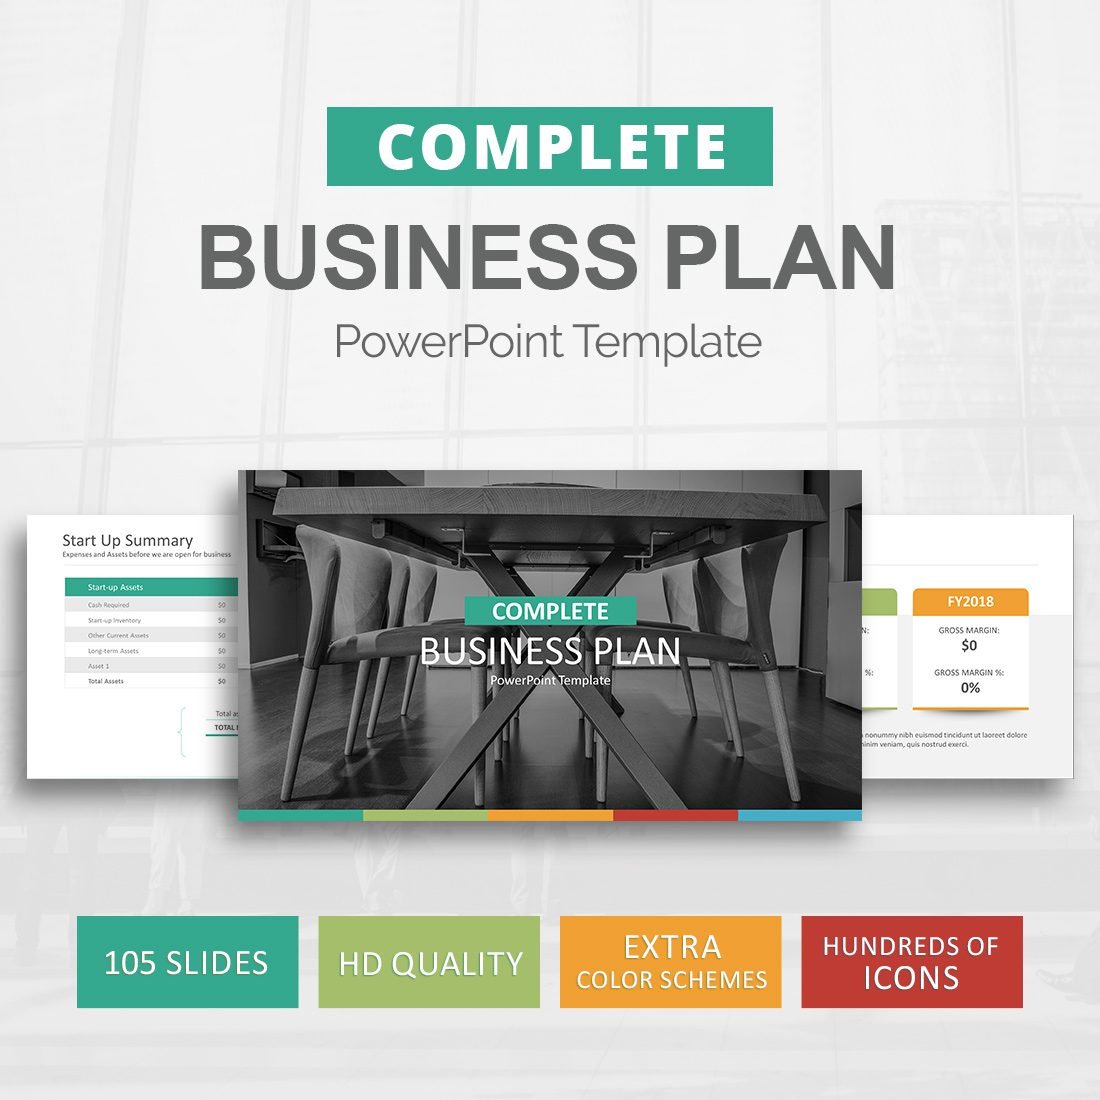 Business plan template for powerpoint slideson business plan template business plan template for powerpoint cheaphphosting Images